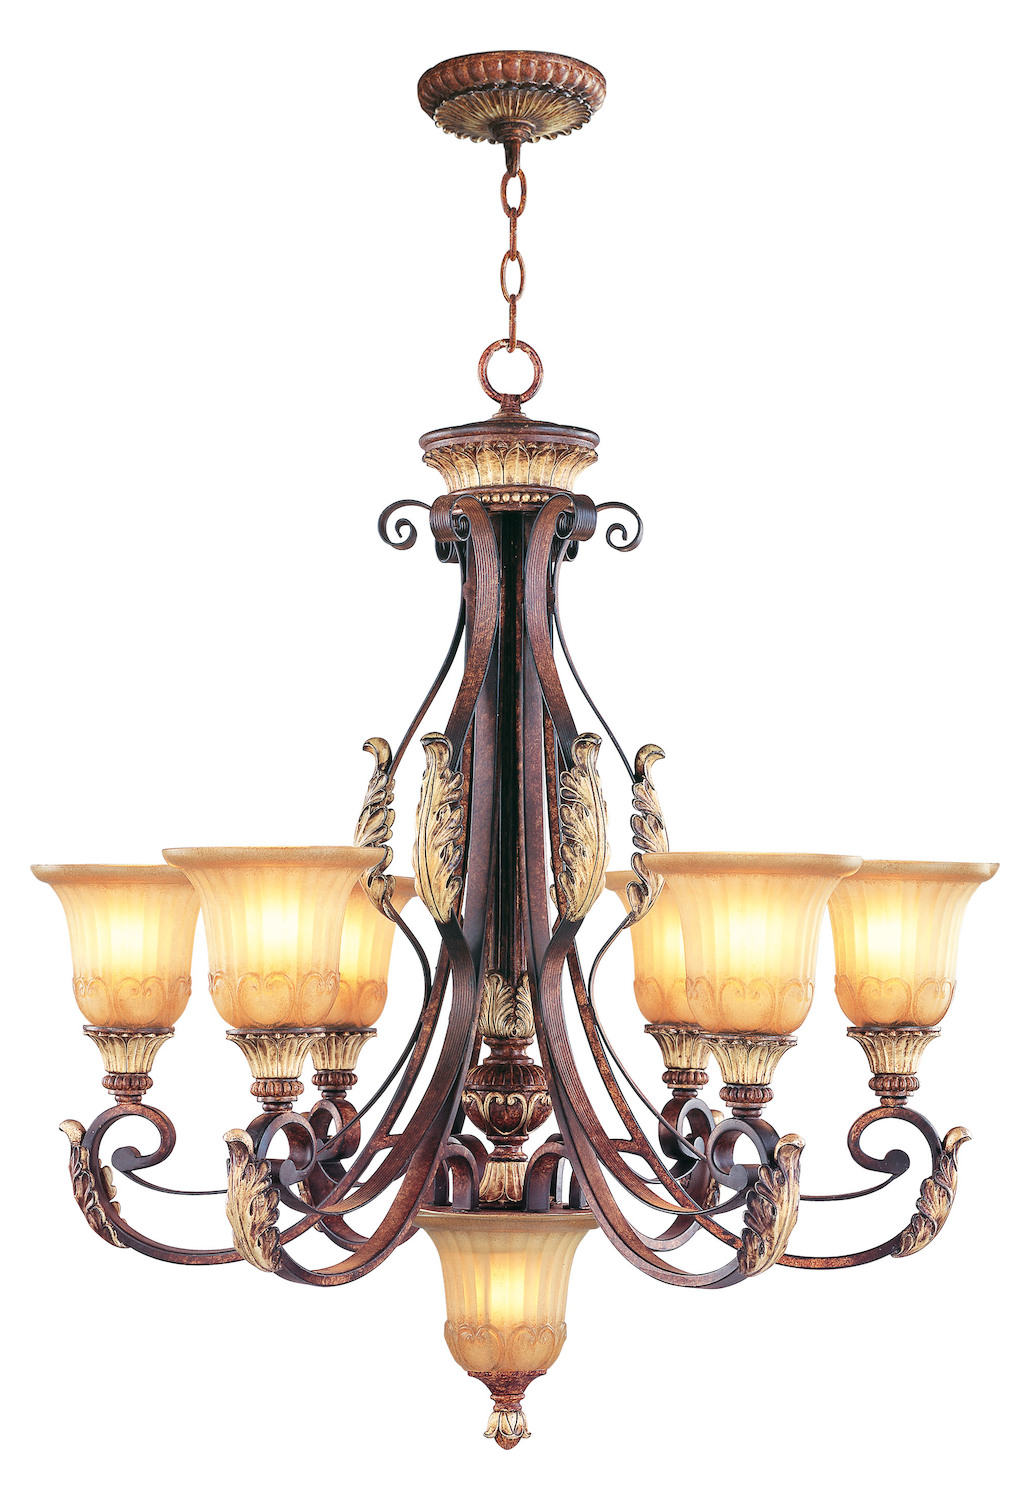 Livex Lighting Verona Bronze 6 Light 600w Chandelier With Medium Bulb Base And Rustic Art Glass